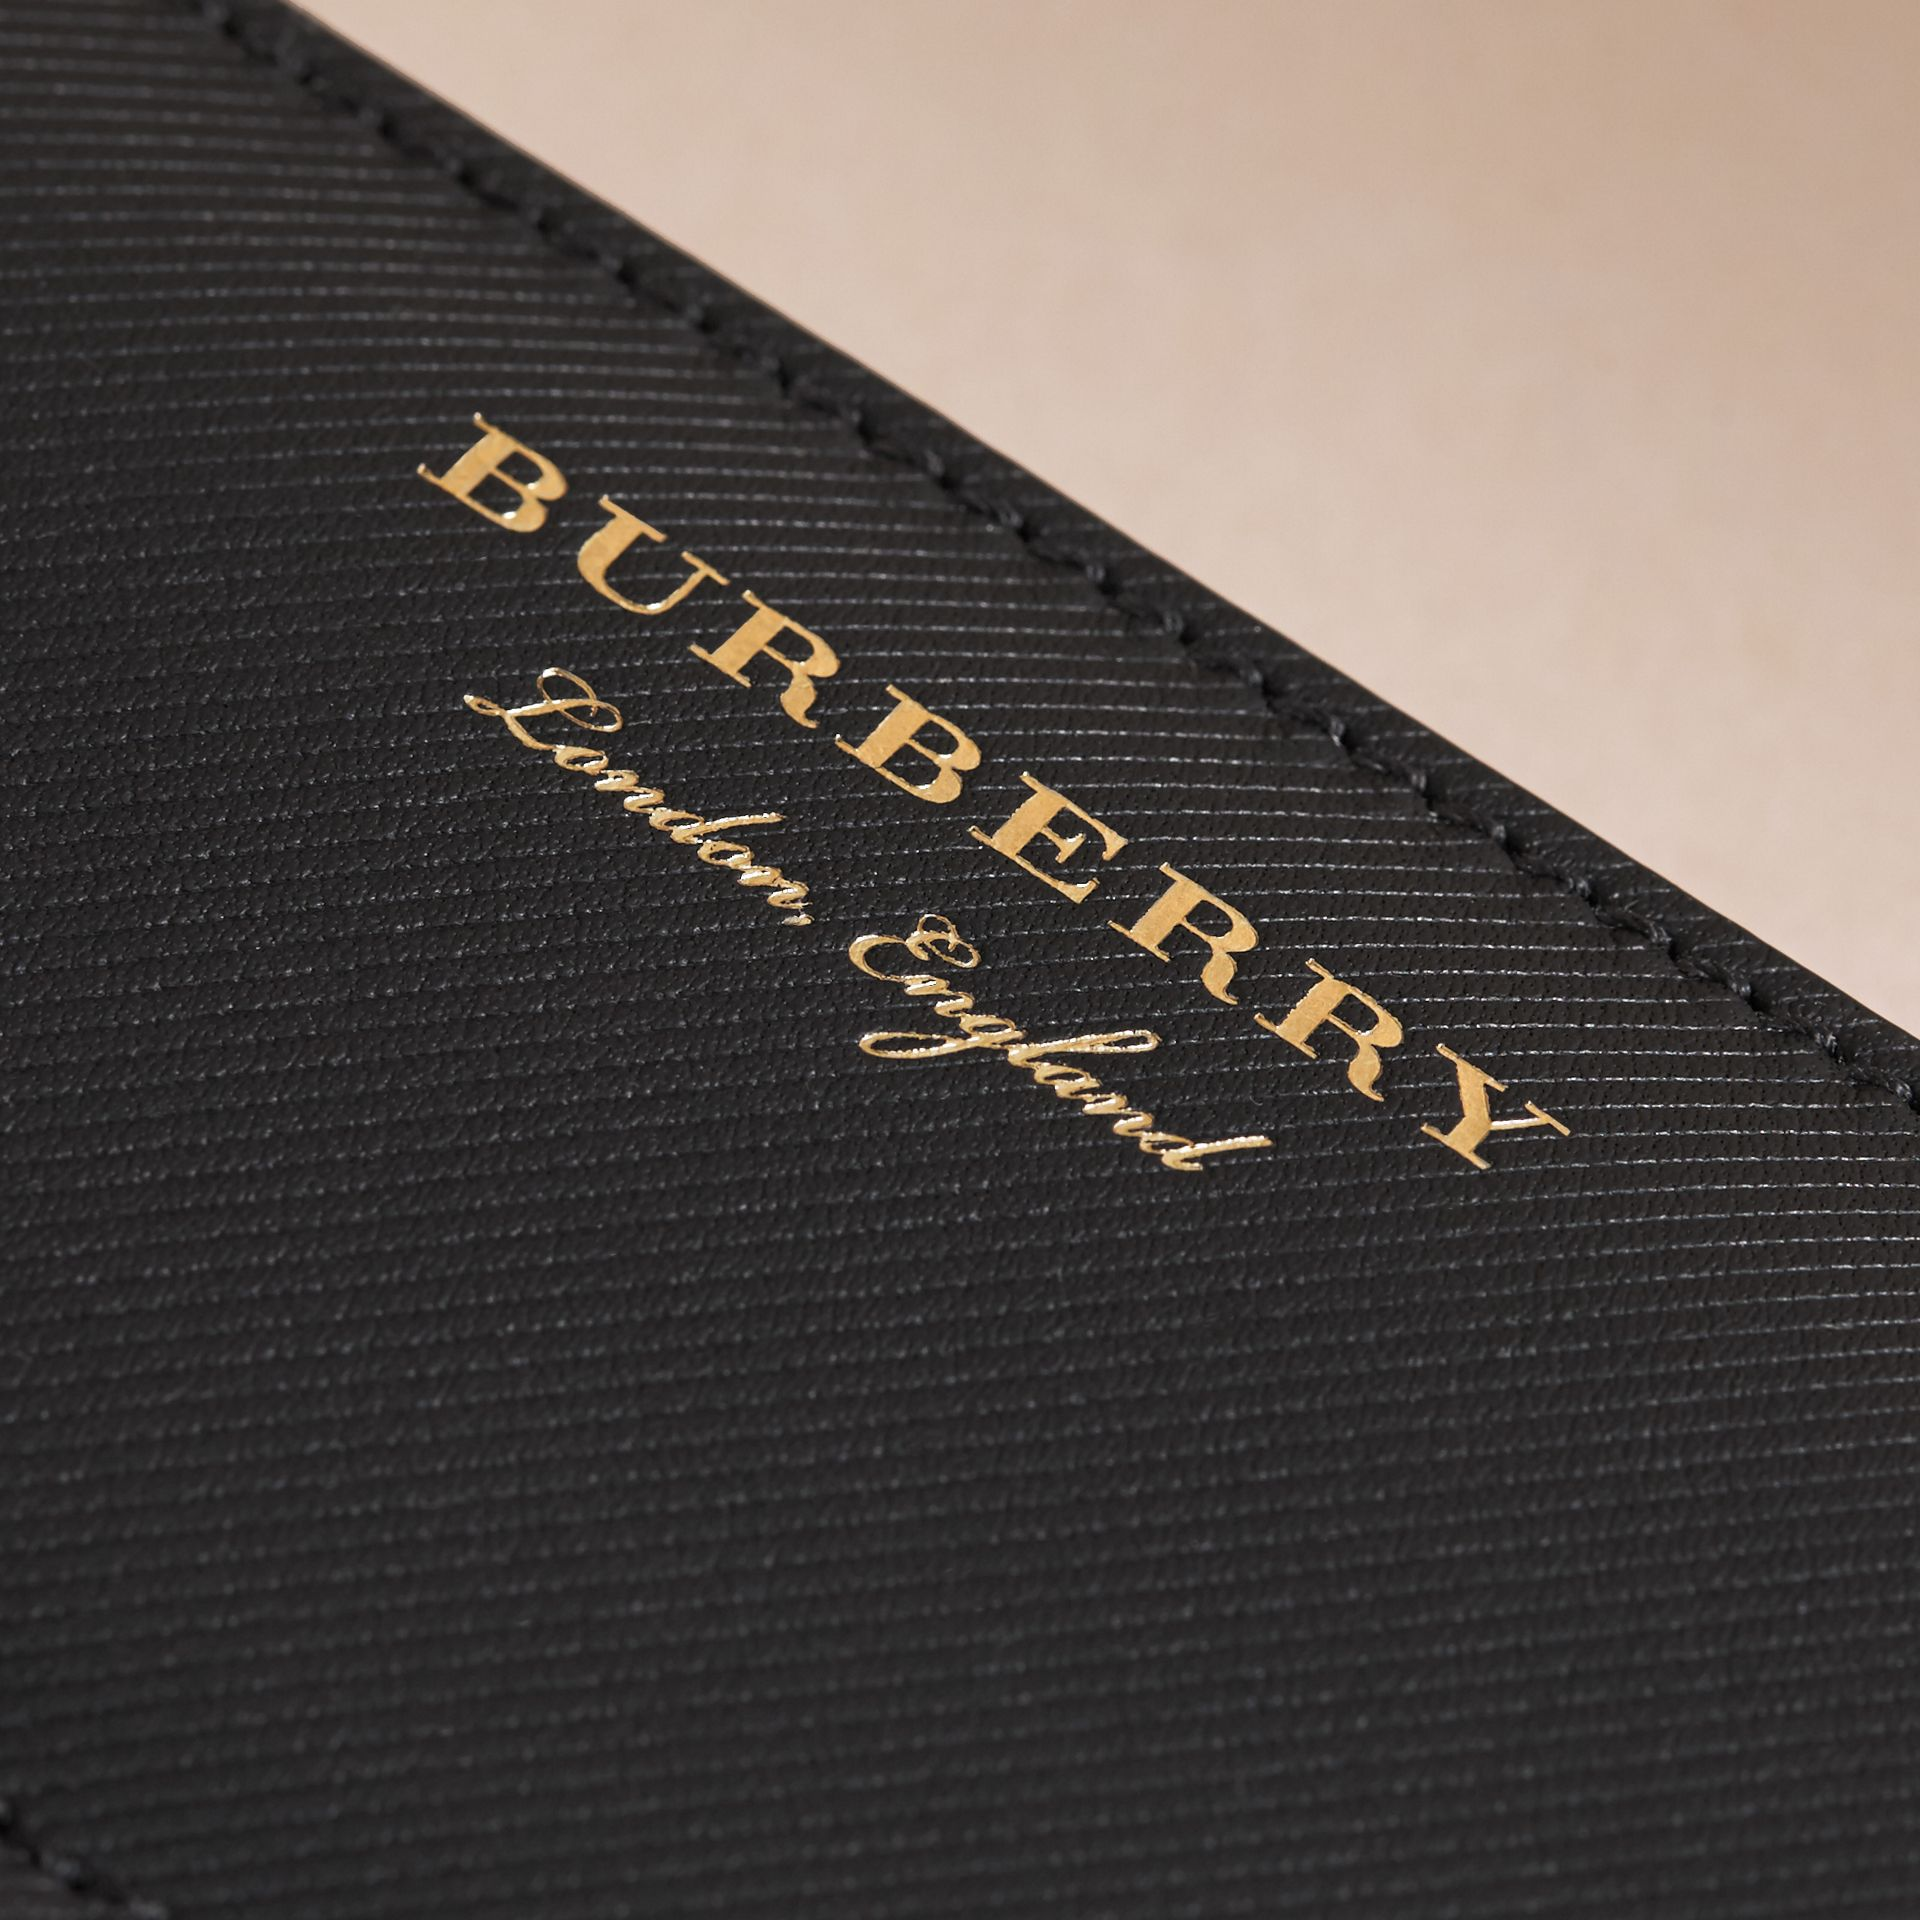 Trench Leather Ziparound Wallet in Black - Women | Burberry - gallery image 2